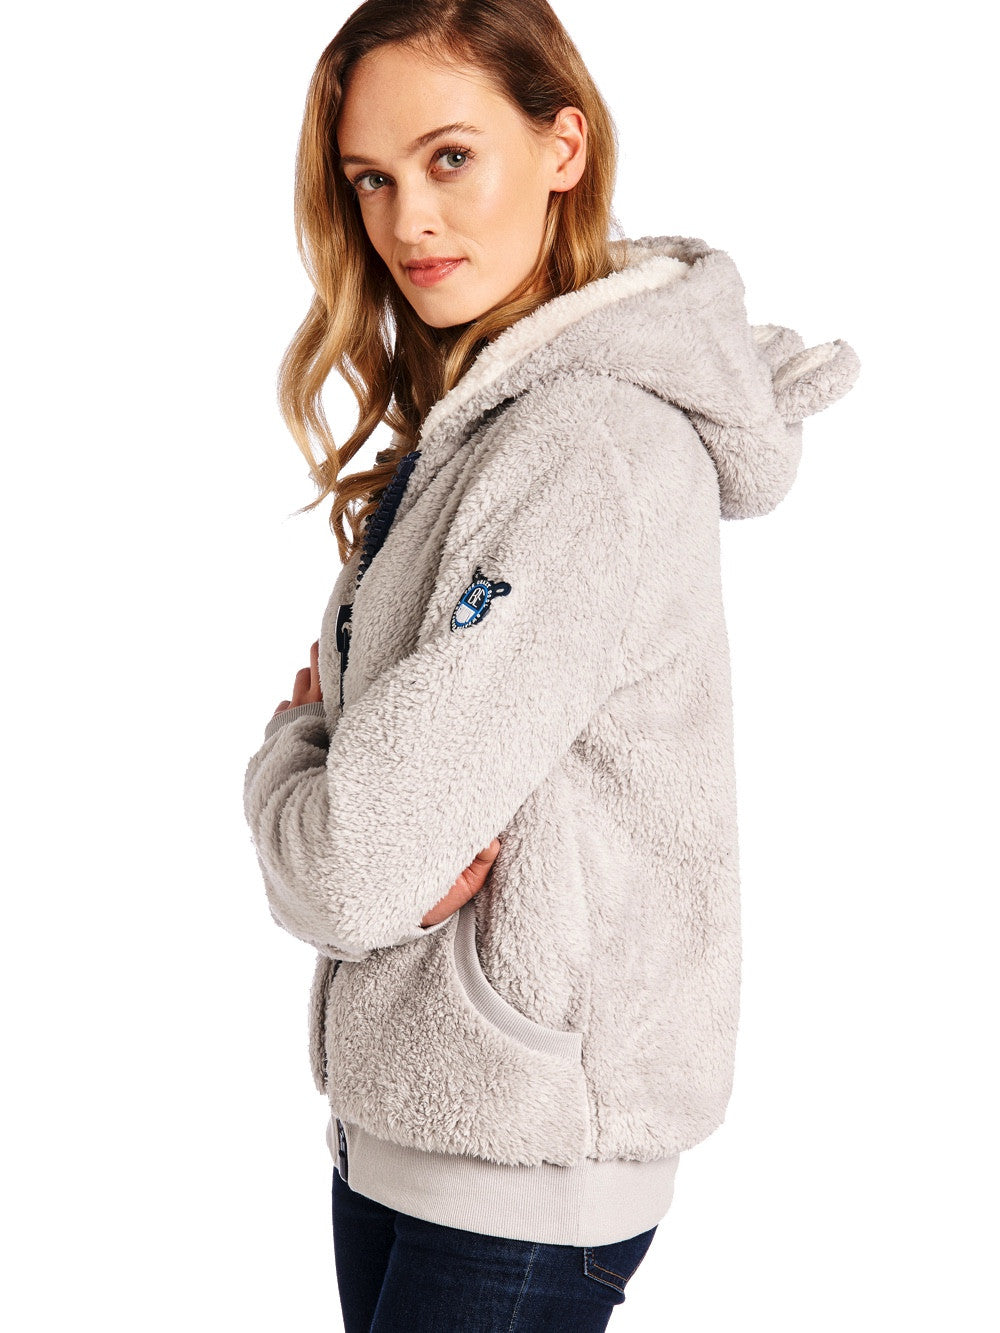 Soft Grey Furry Koala Sweater Women